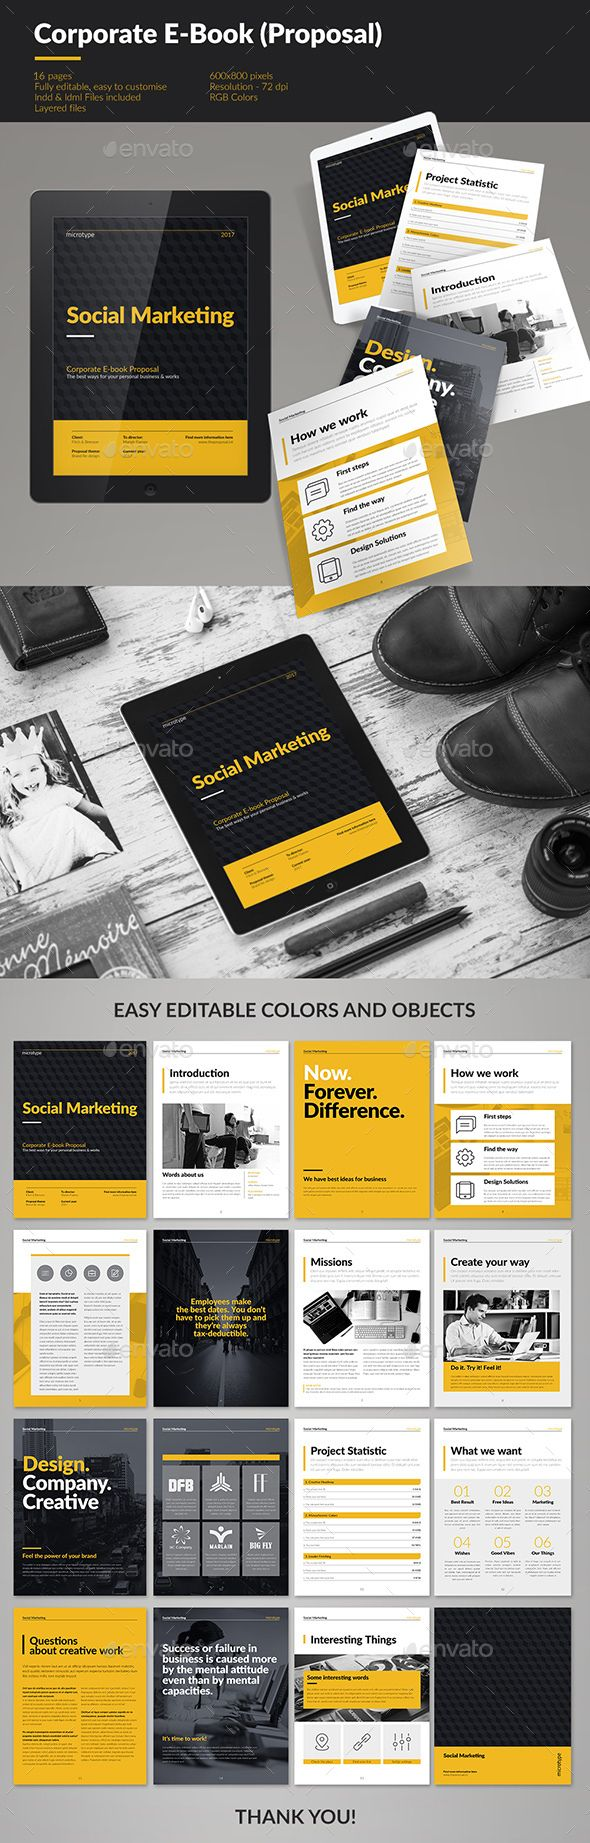 Corporate E-book Template   Template, Layouts and Brochures